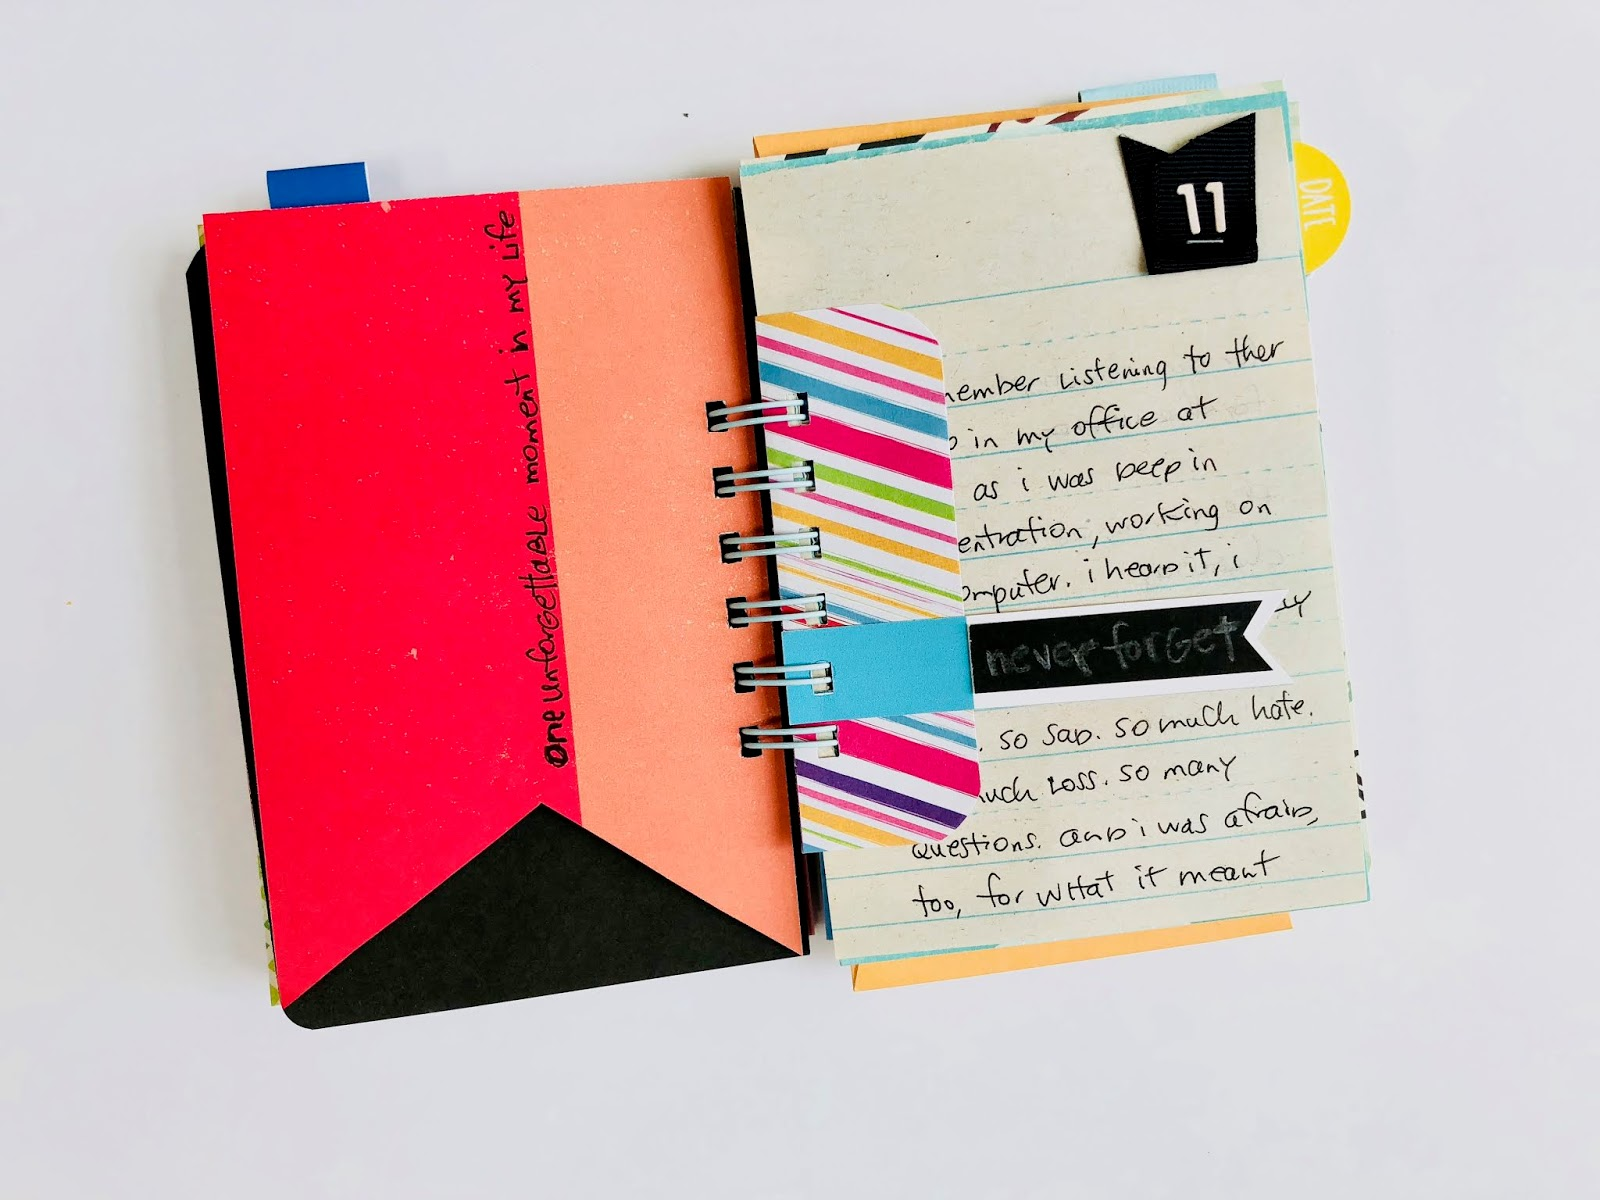 #30lists #30 Days of Lists #listmaker #journaling prompts #journaling #Journal #smashbook #junk journal #mini album